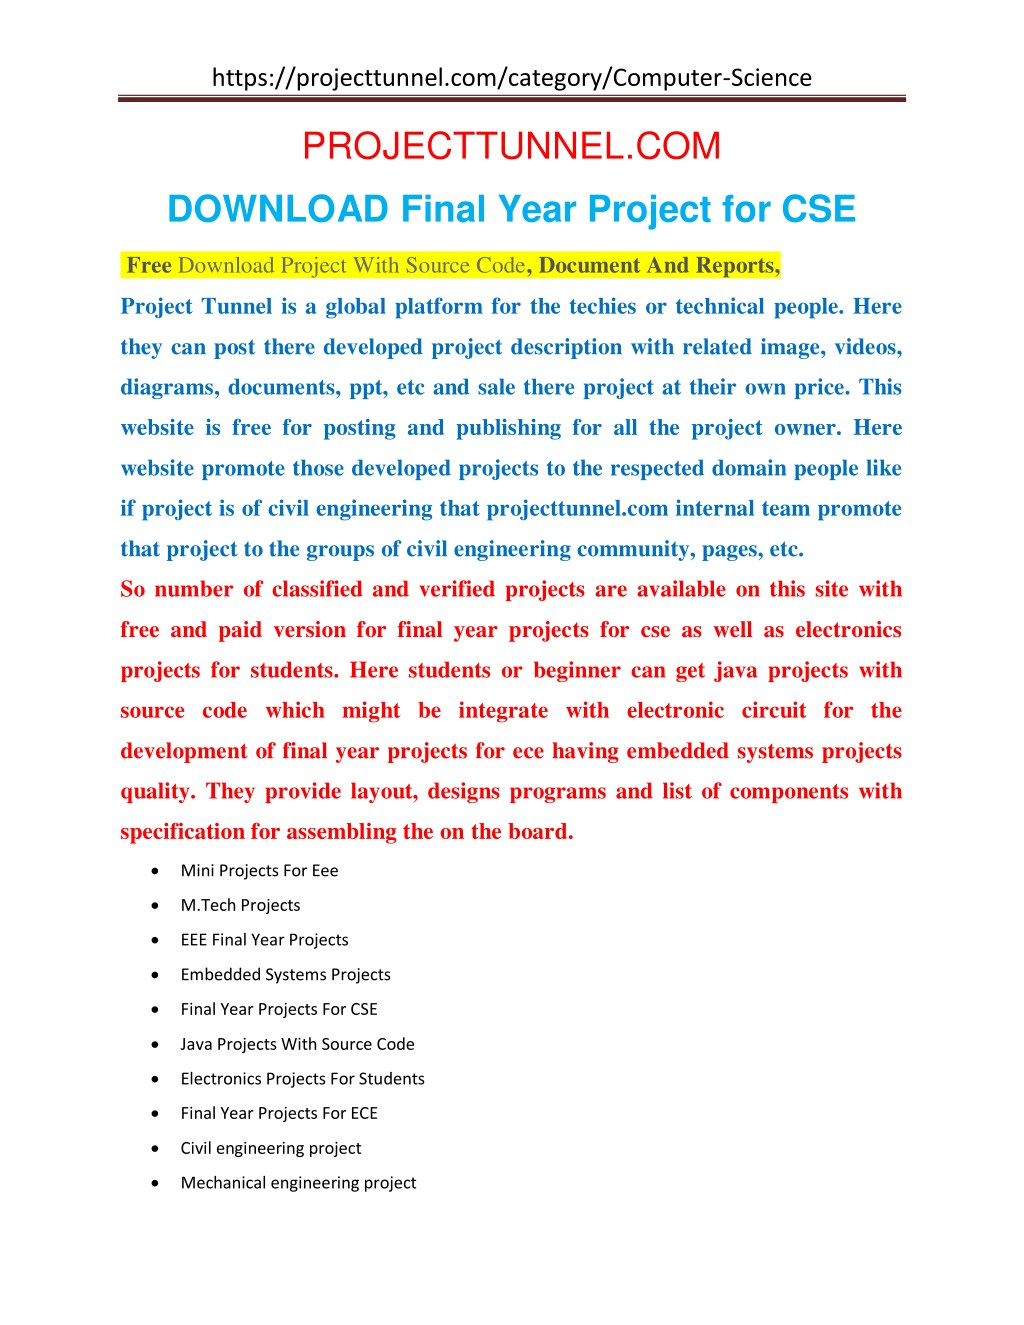 Ppt Final Year Projects For Cse Powerpoint Presentation Id7972242 To Electronics Mini Circuits Https Projecttunnel Com Category Computer Science N